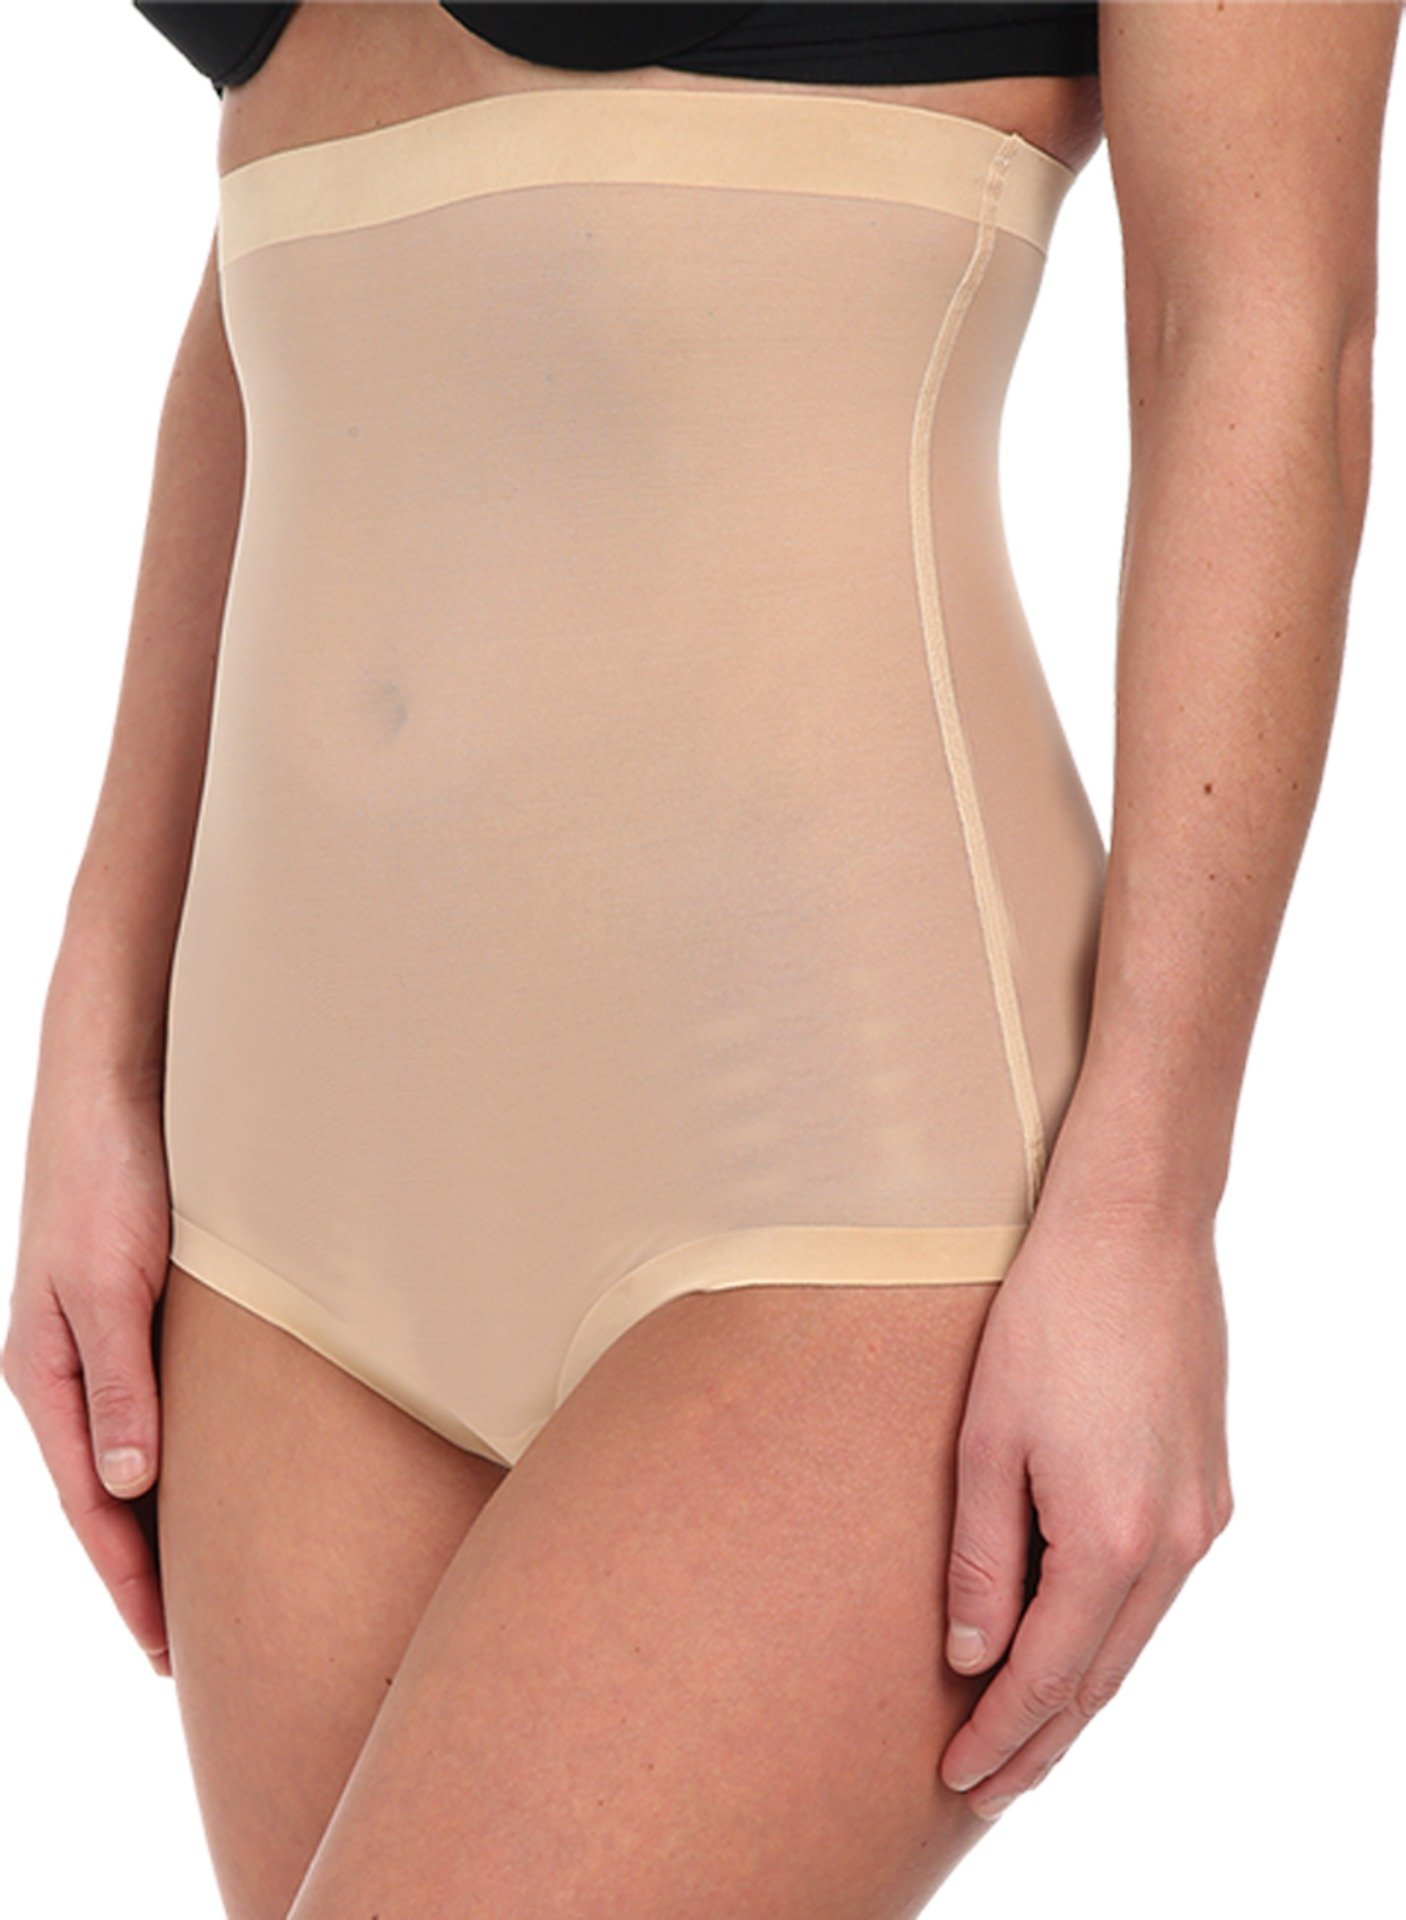 Wolford Women's Tulle Control Panty High Waist Nude 34 by Wolford (Image #1)